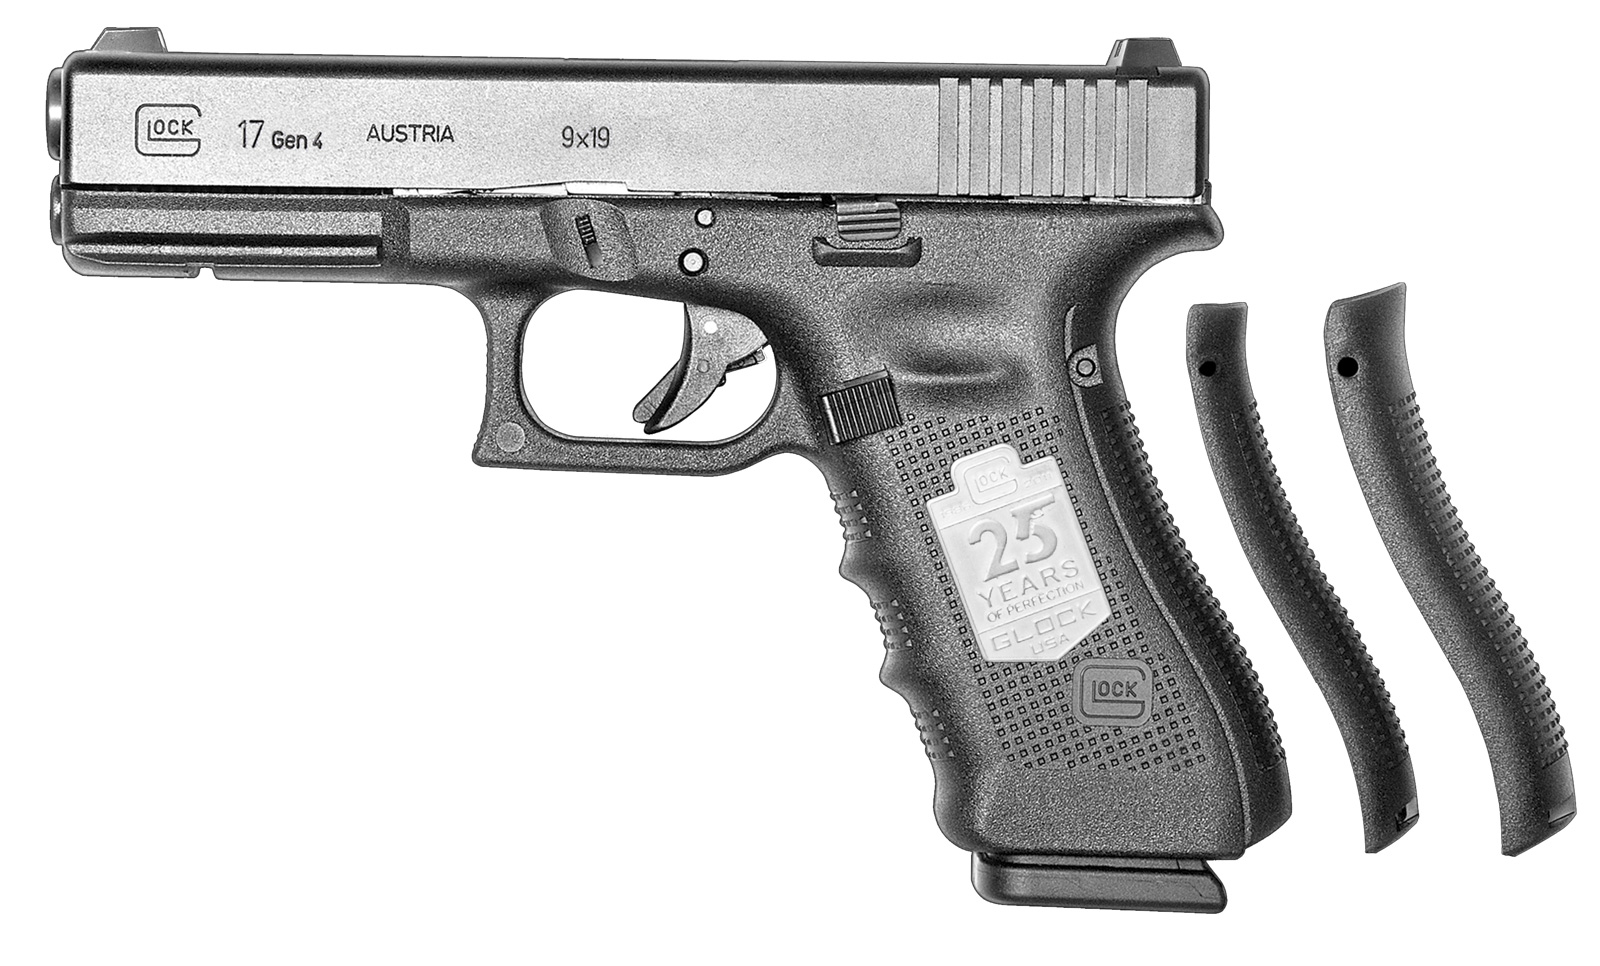 Limited Edition Silver Anniversary Glock 17 Gen4 Pistol To Celebrate 25 Years In The United States